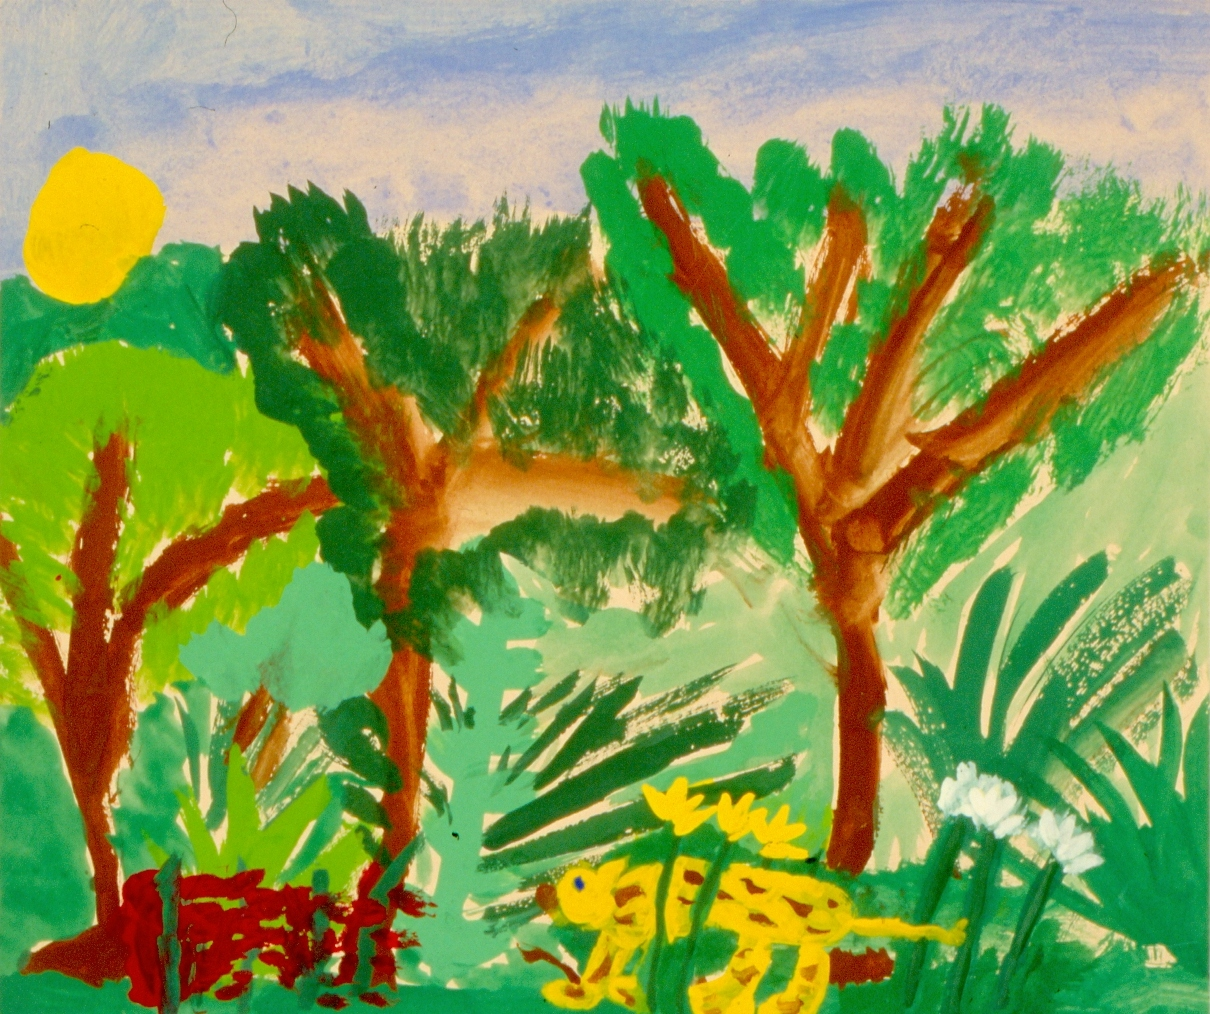 Fun Facts For Kids About Henri Rousseau